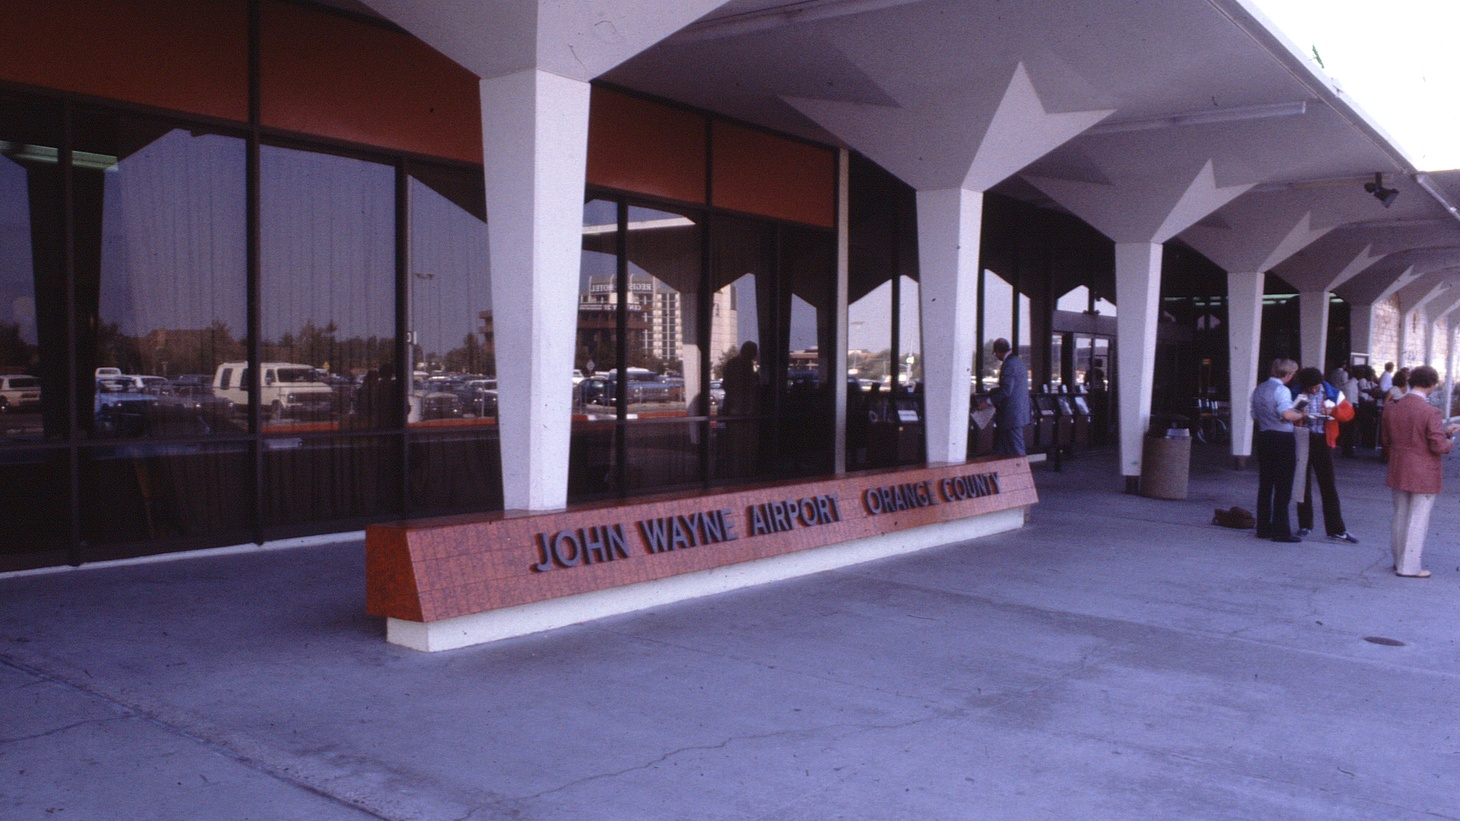 Democrats in Orange County want John Wayne's name and likeness removed from the Santa Ana airport (SNA).